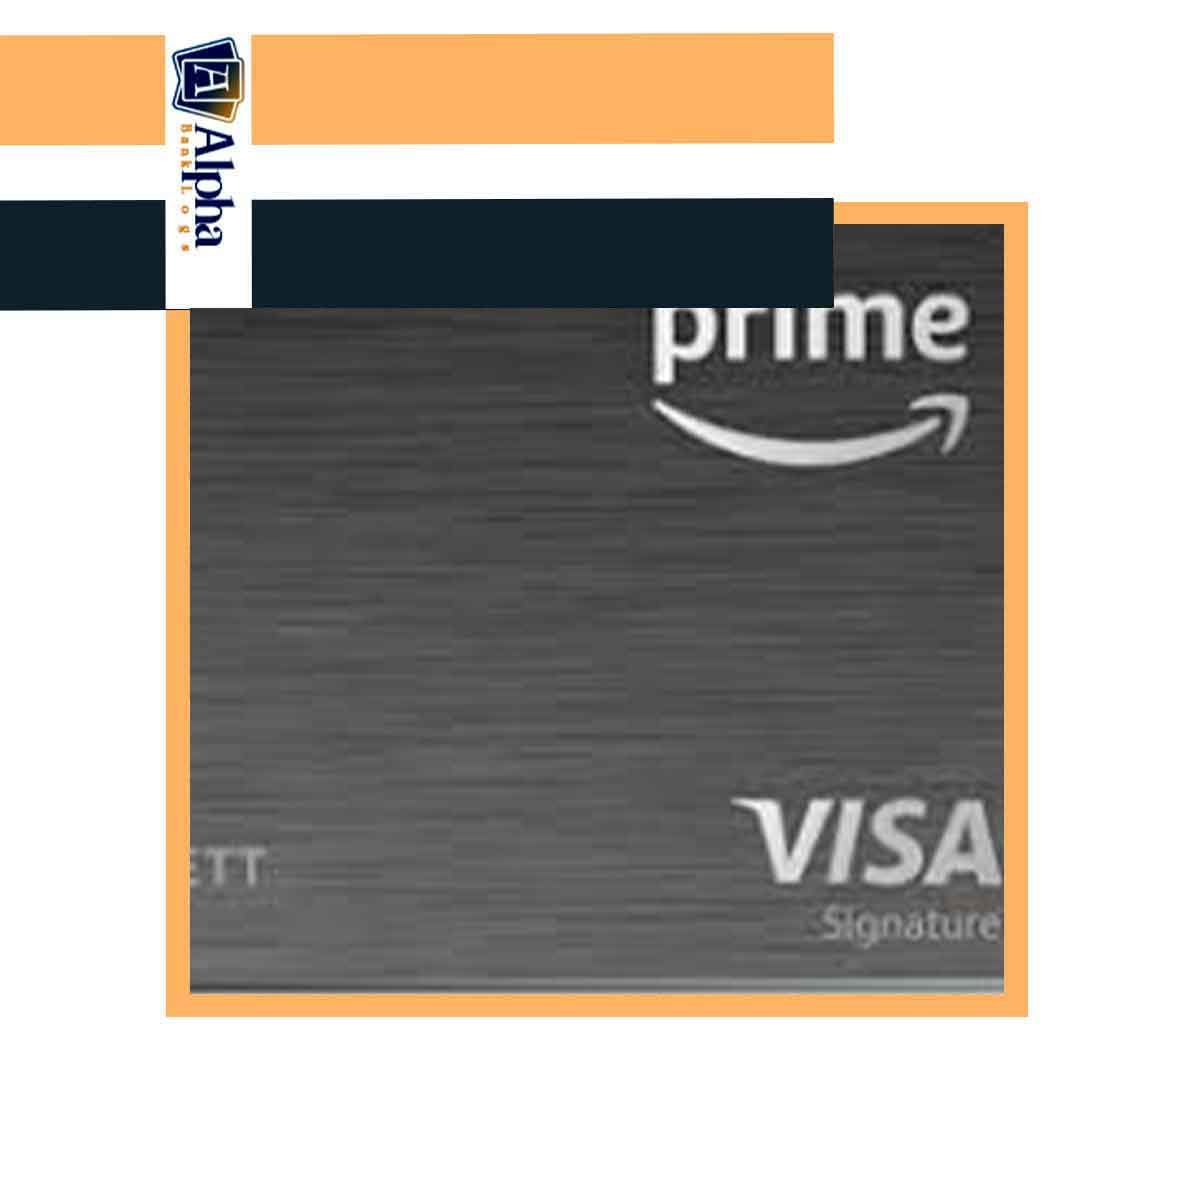 HQ Amazon Account + $1000 Credit Card + PayPal Account + Complete System to Transfer in Clean PayPal funds or BTC